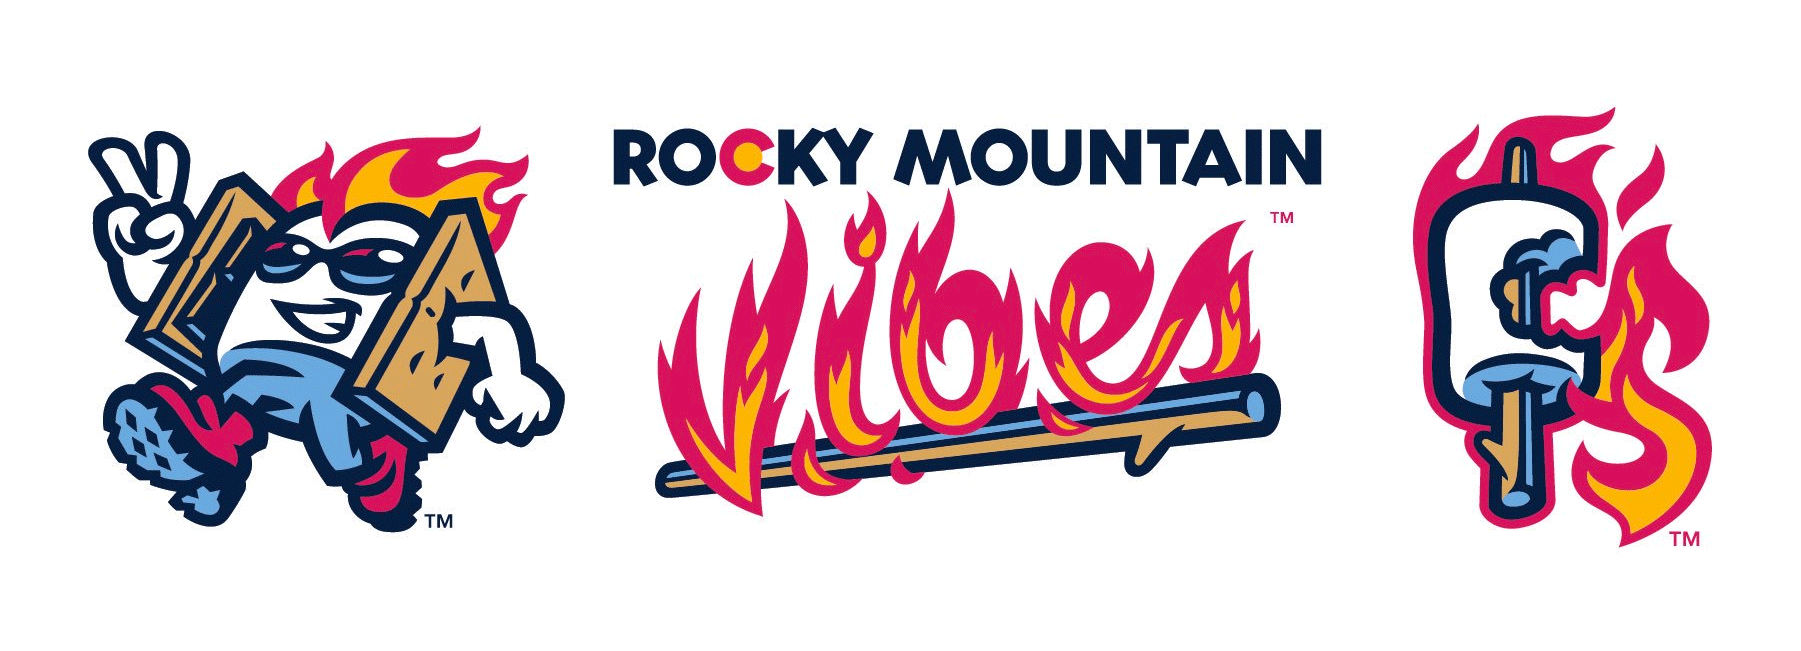 New Name + New Logos for Rocky Mountain Vibes by Brandiose